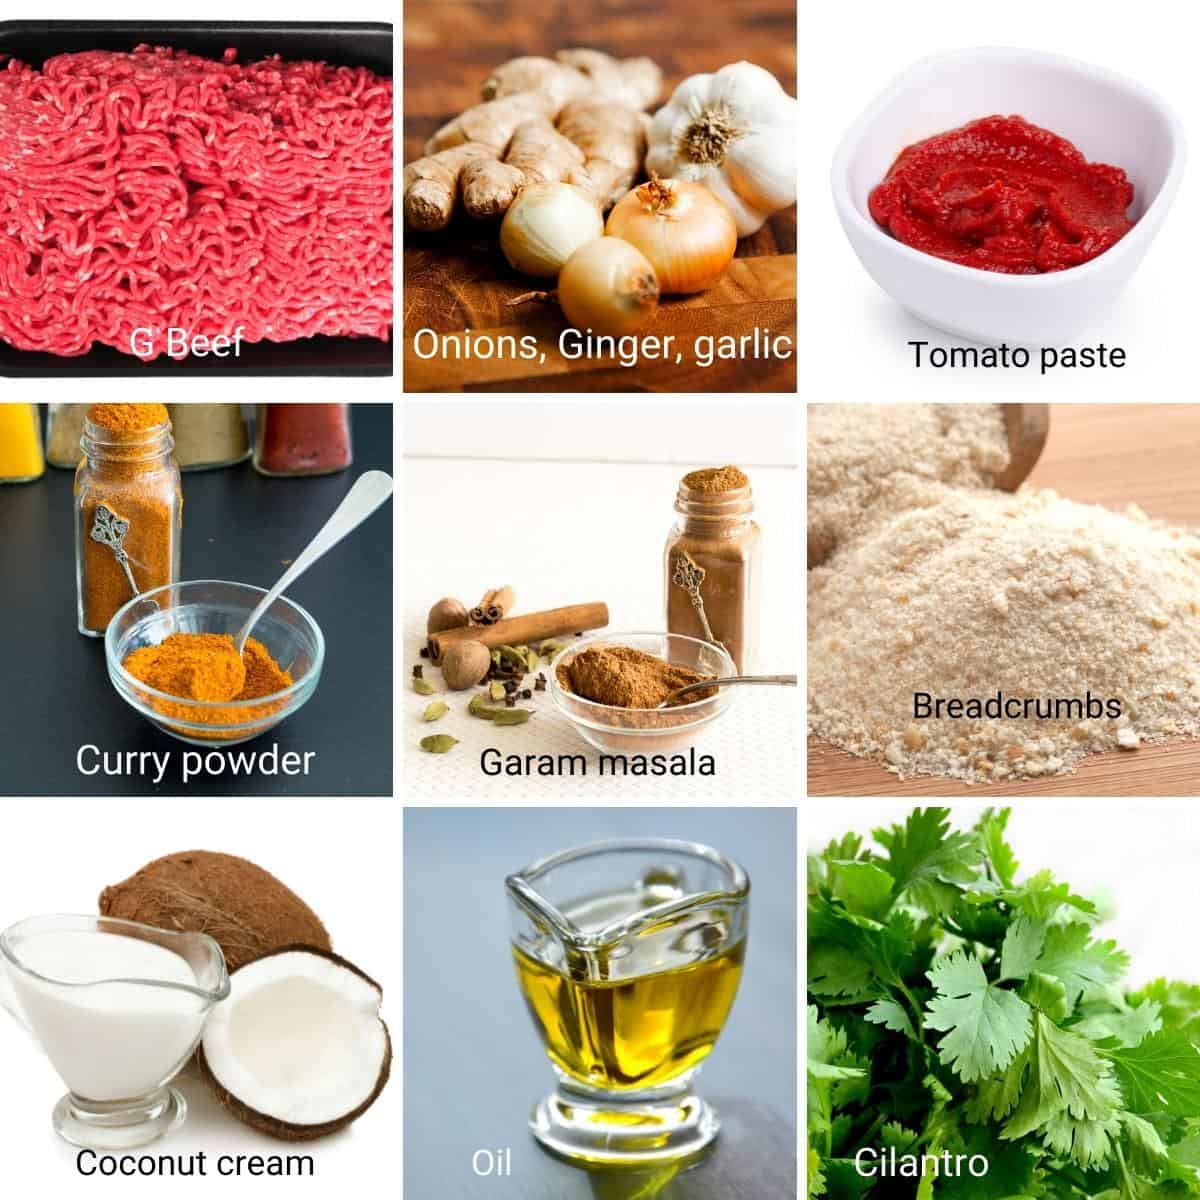 Ingredients for making the meatball kofta curry.